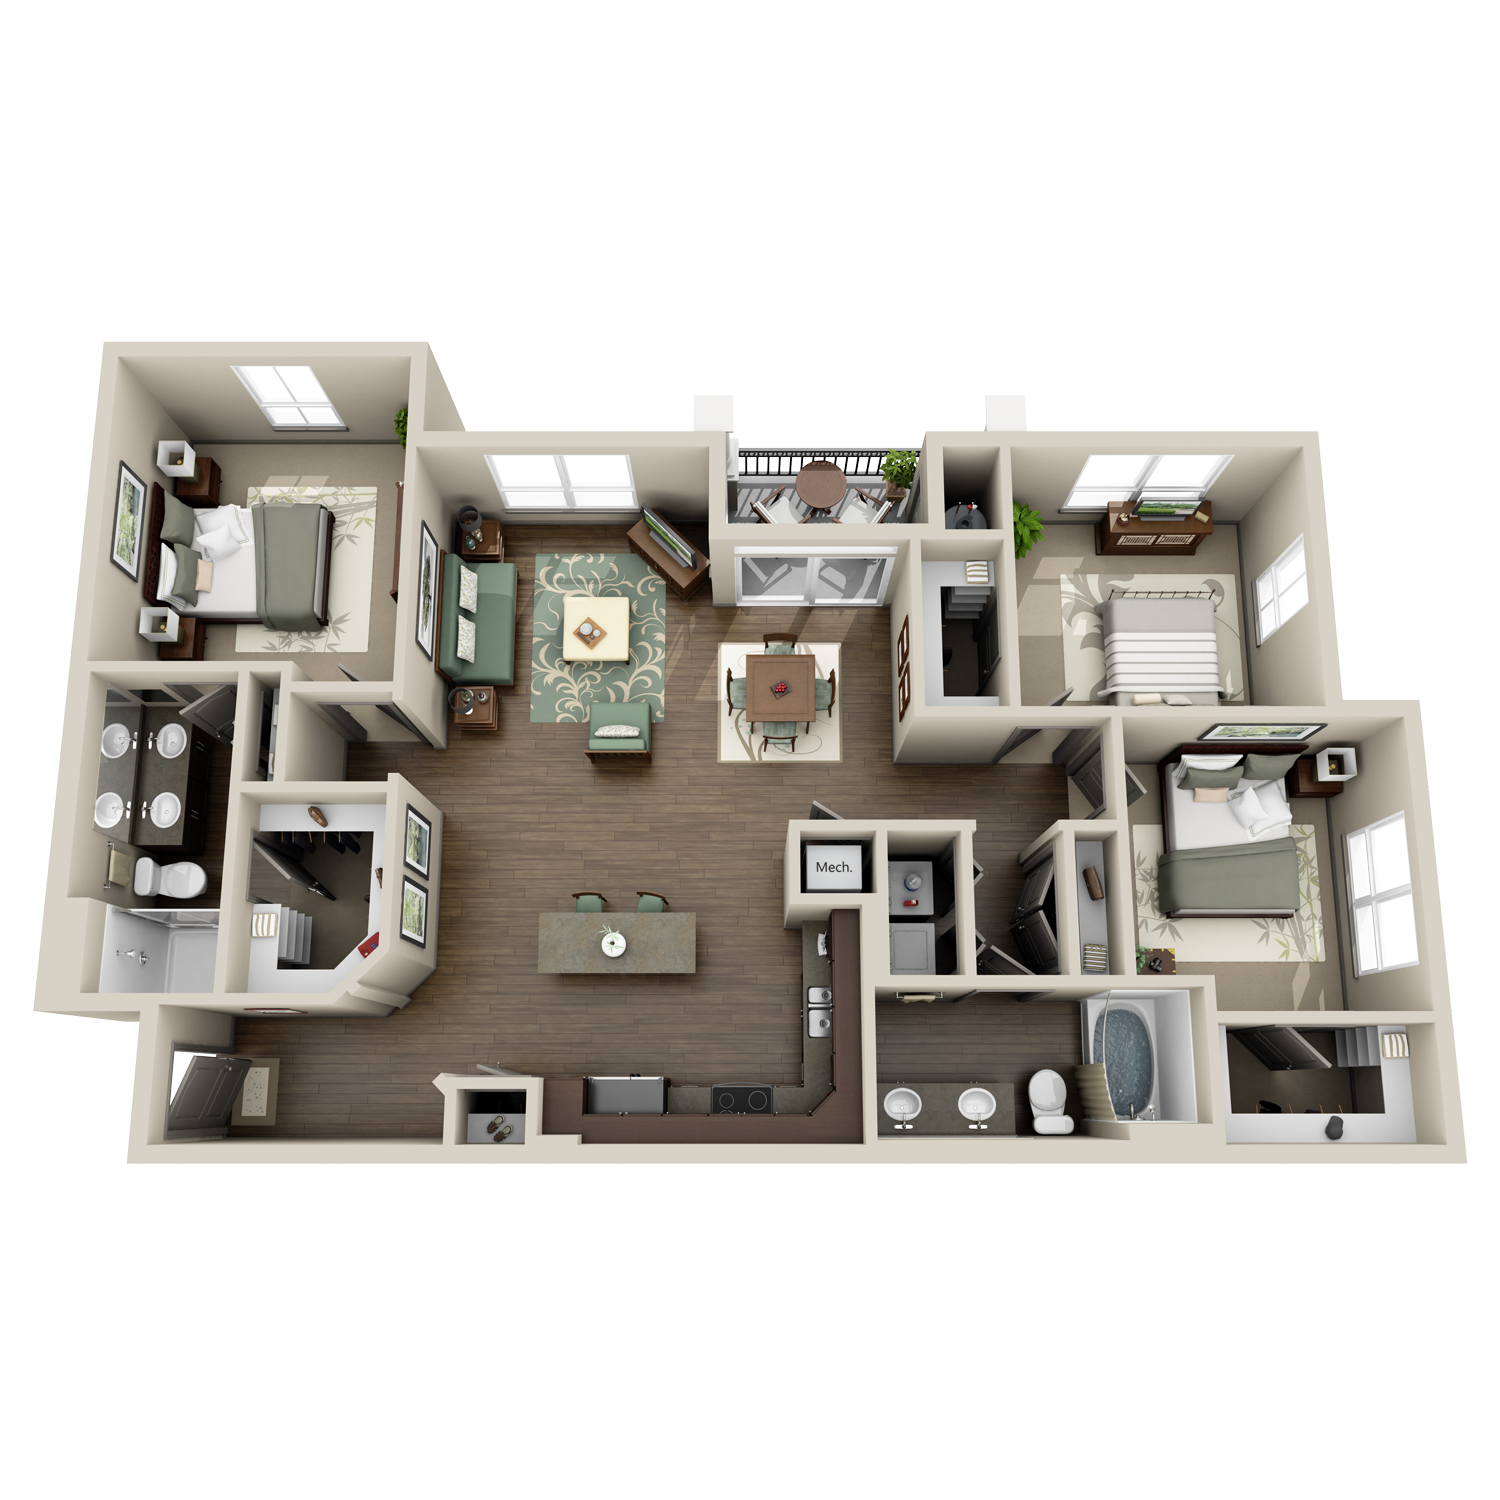 C1/C1A floor plan featuring 3 bedrooms and 2 baths